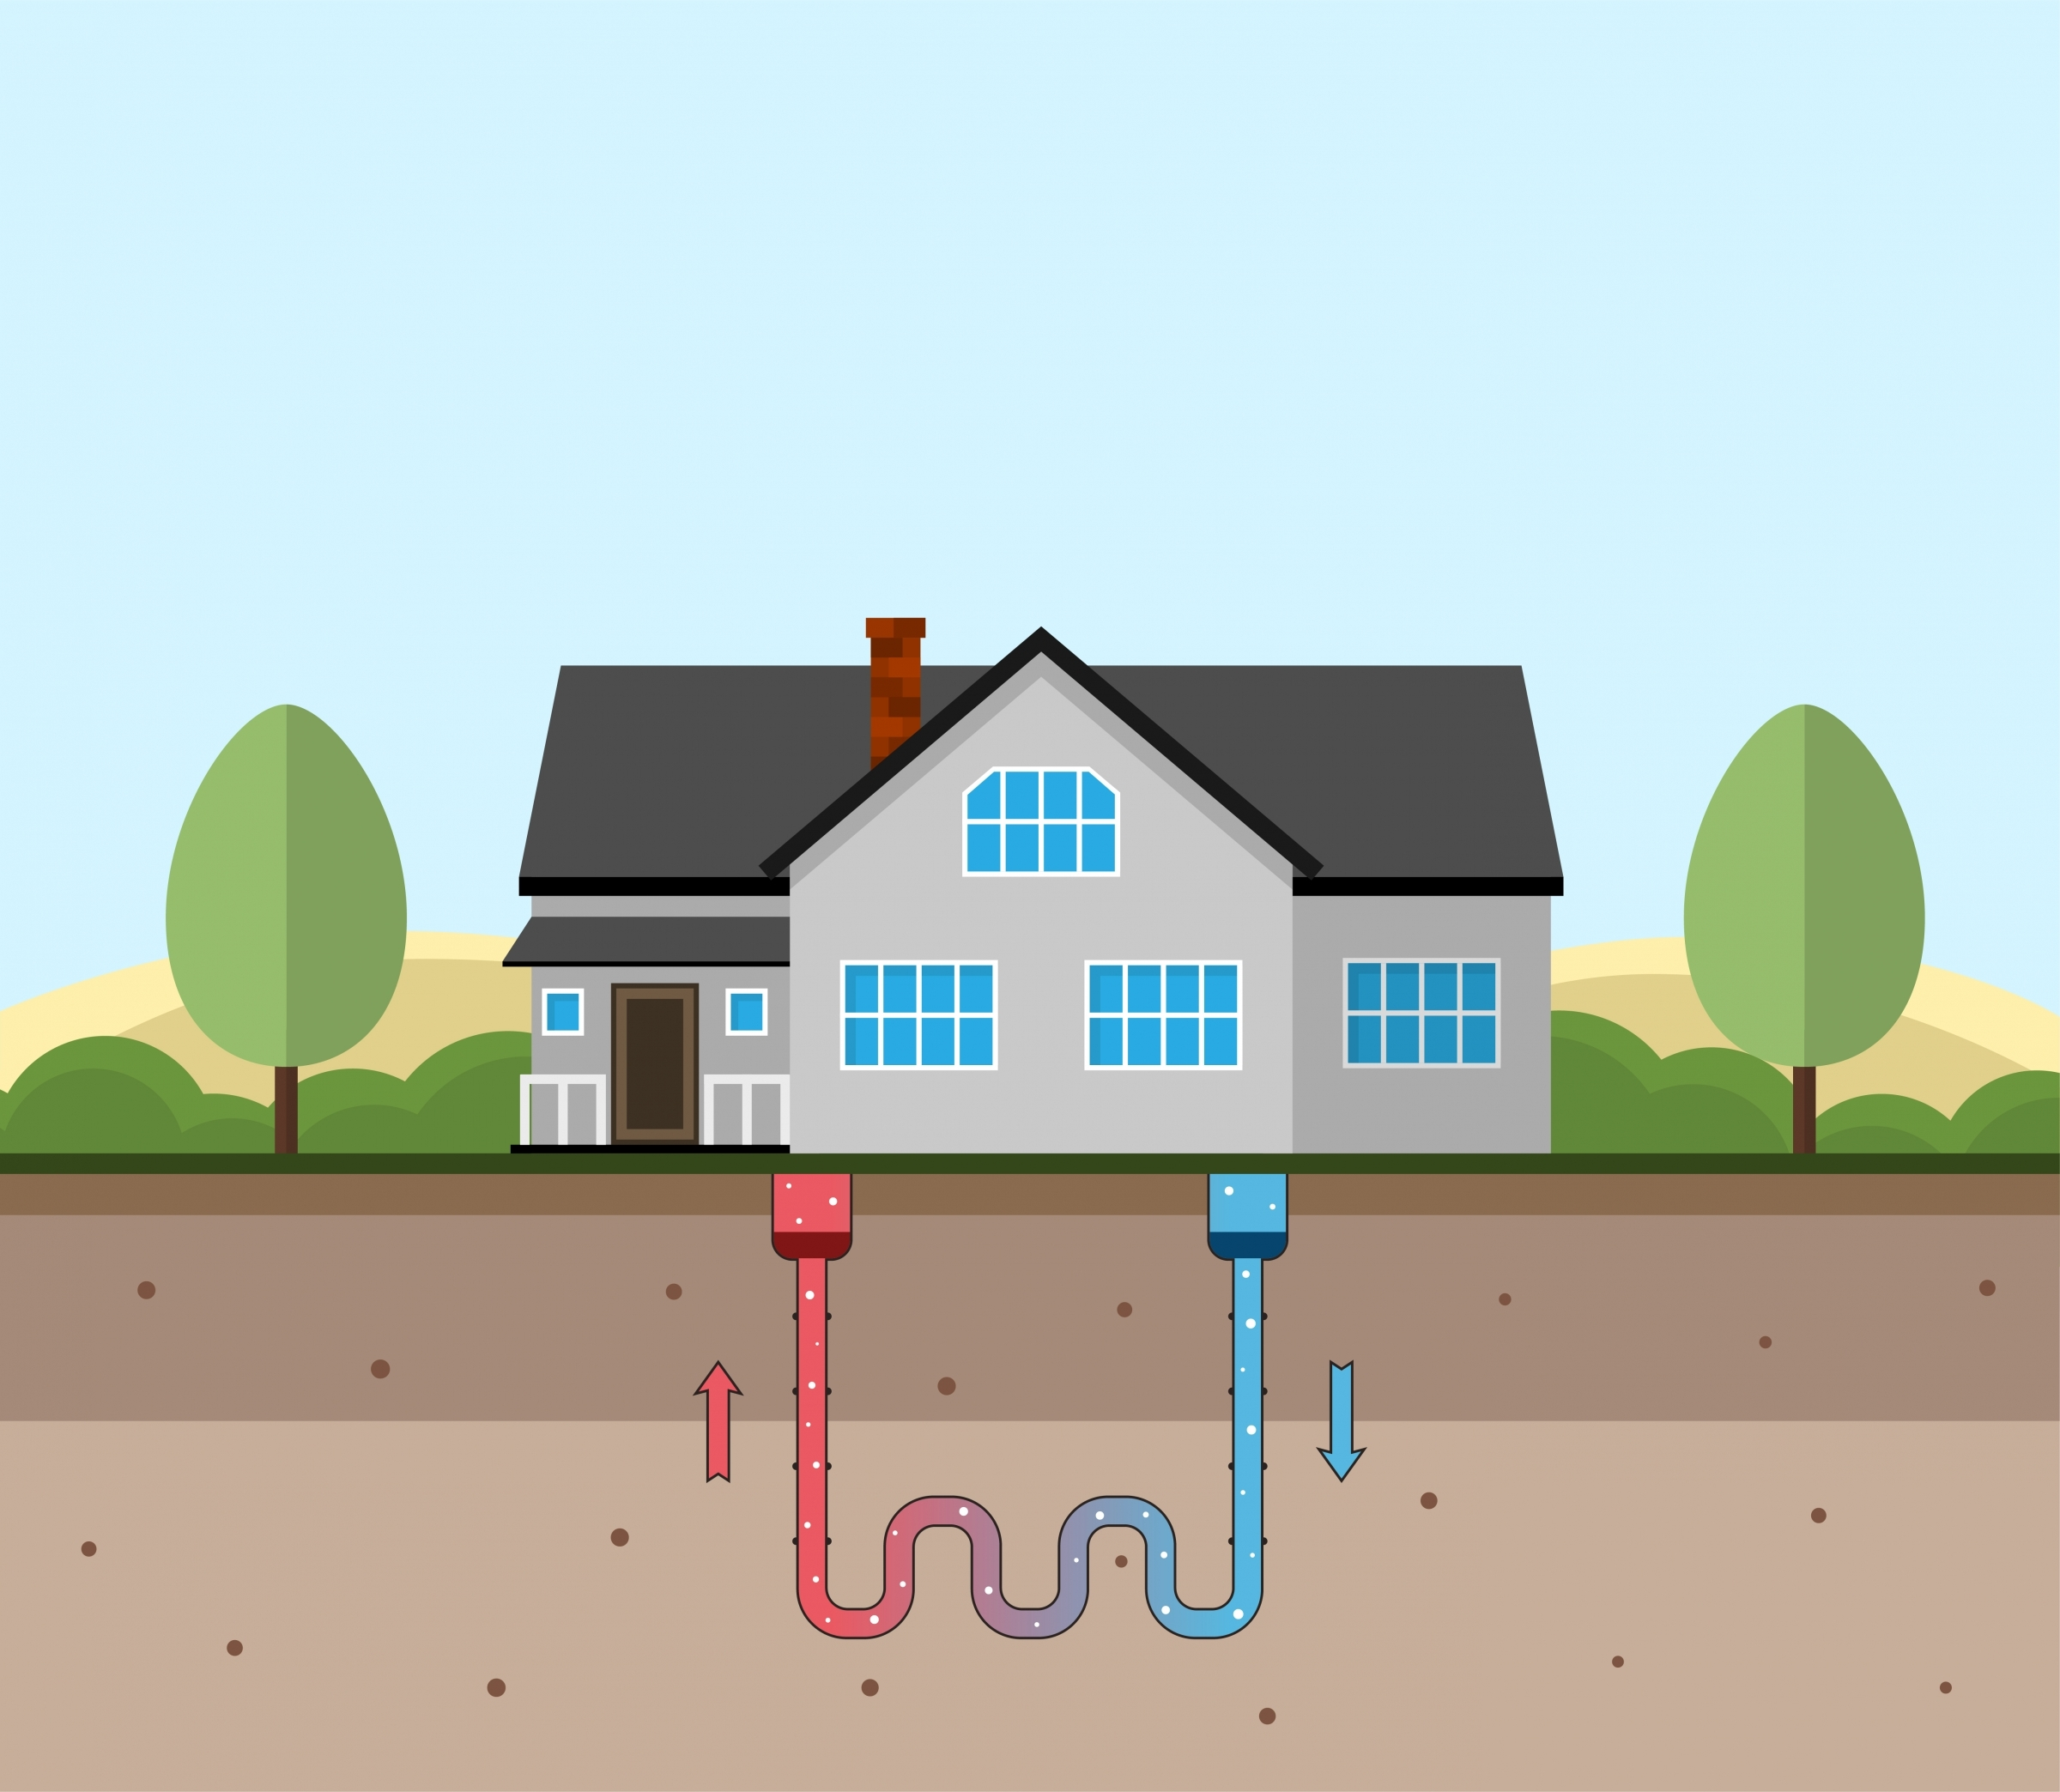 geothermal heated home illustration